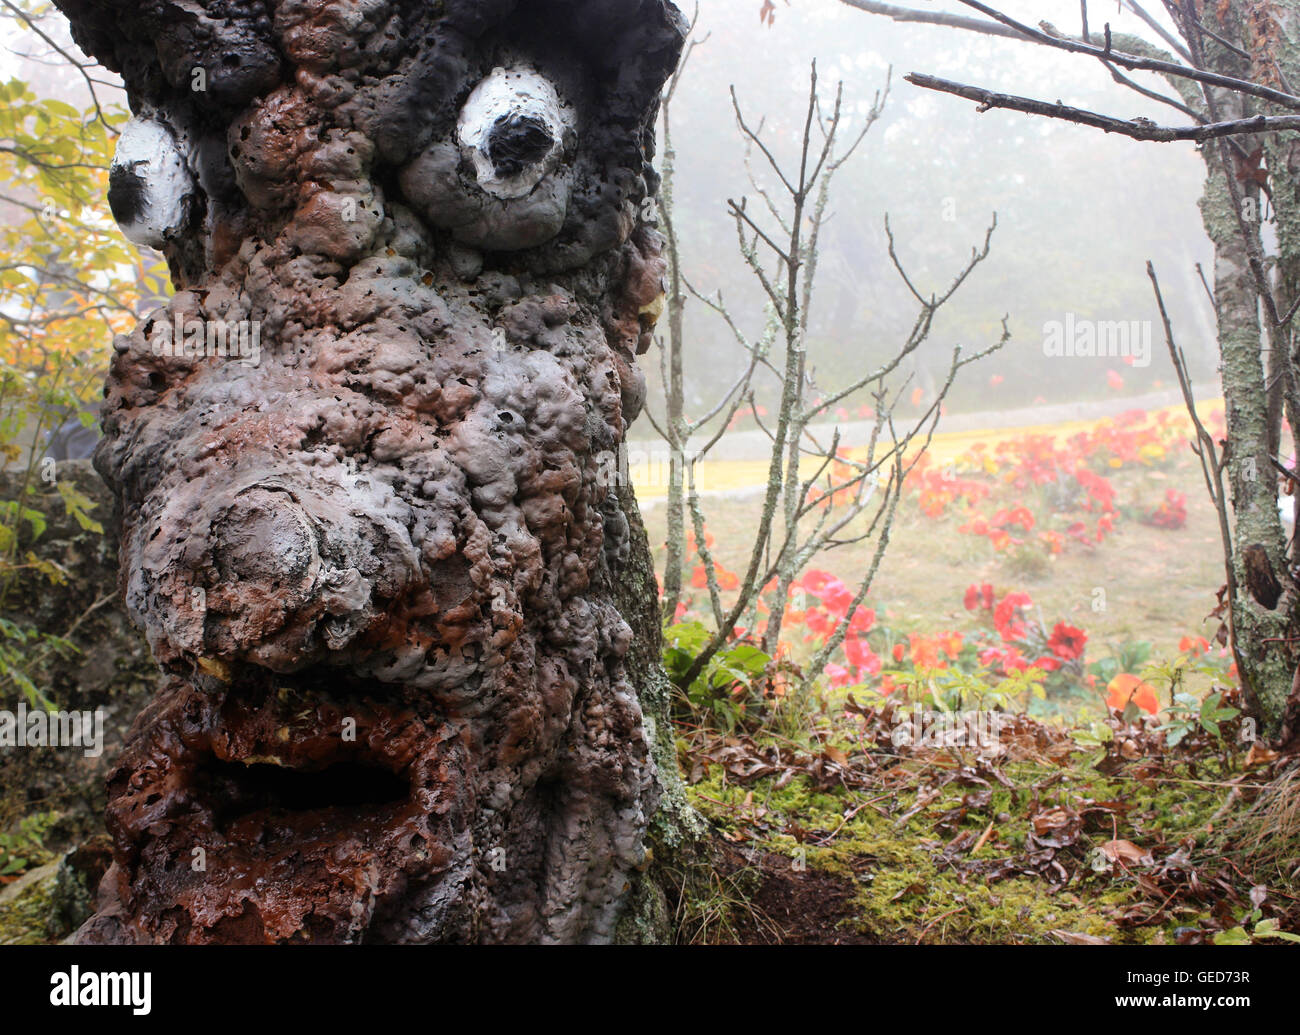 Fake tree with a face at the Land of Oz, Beech Mountain, NC - Stock Image